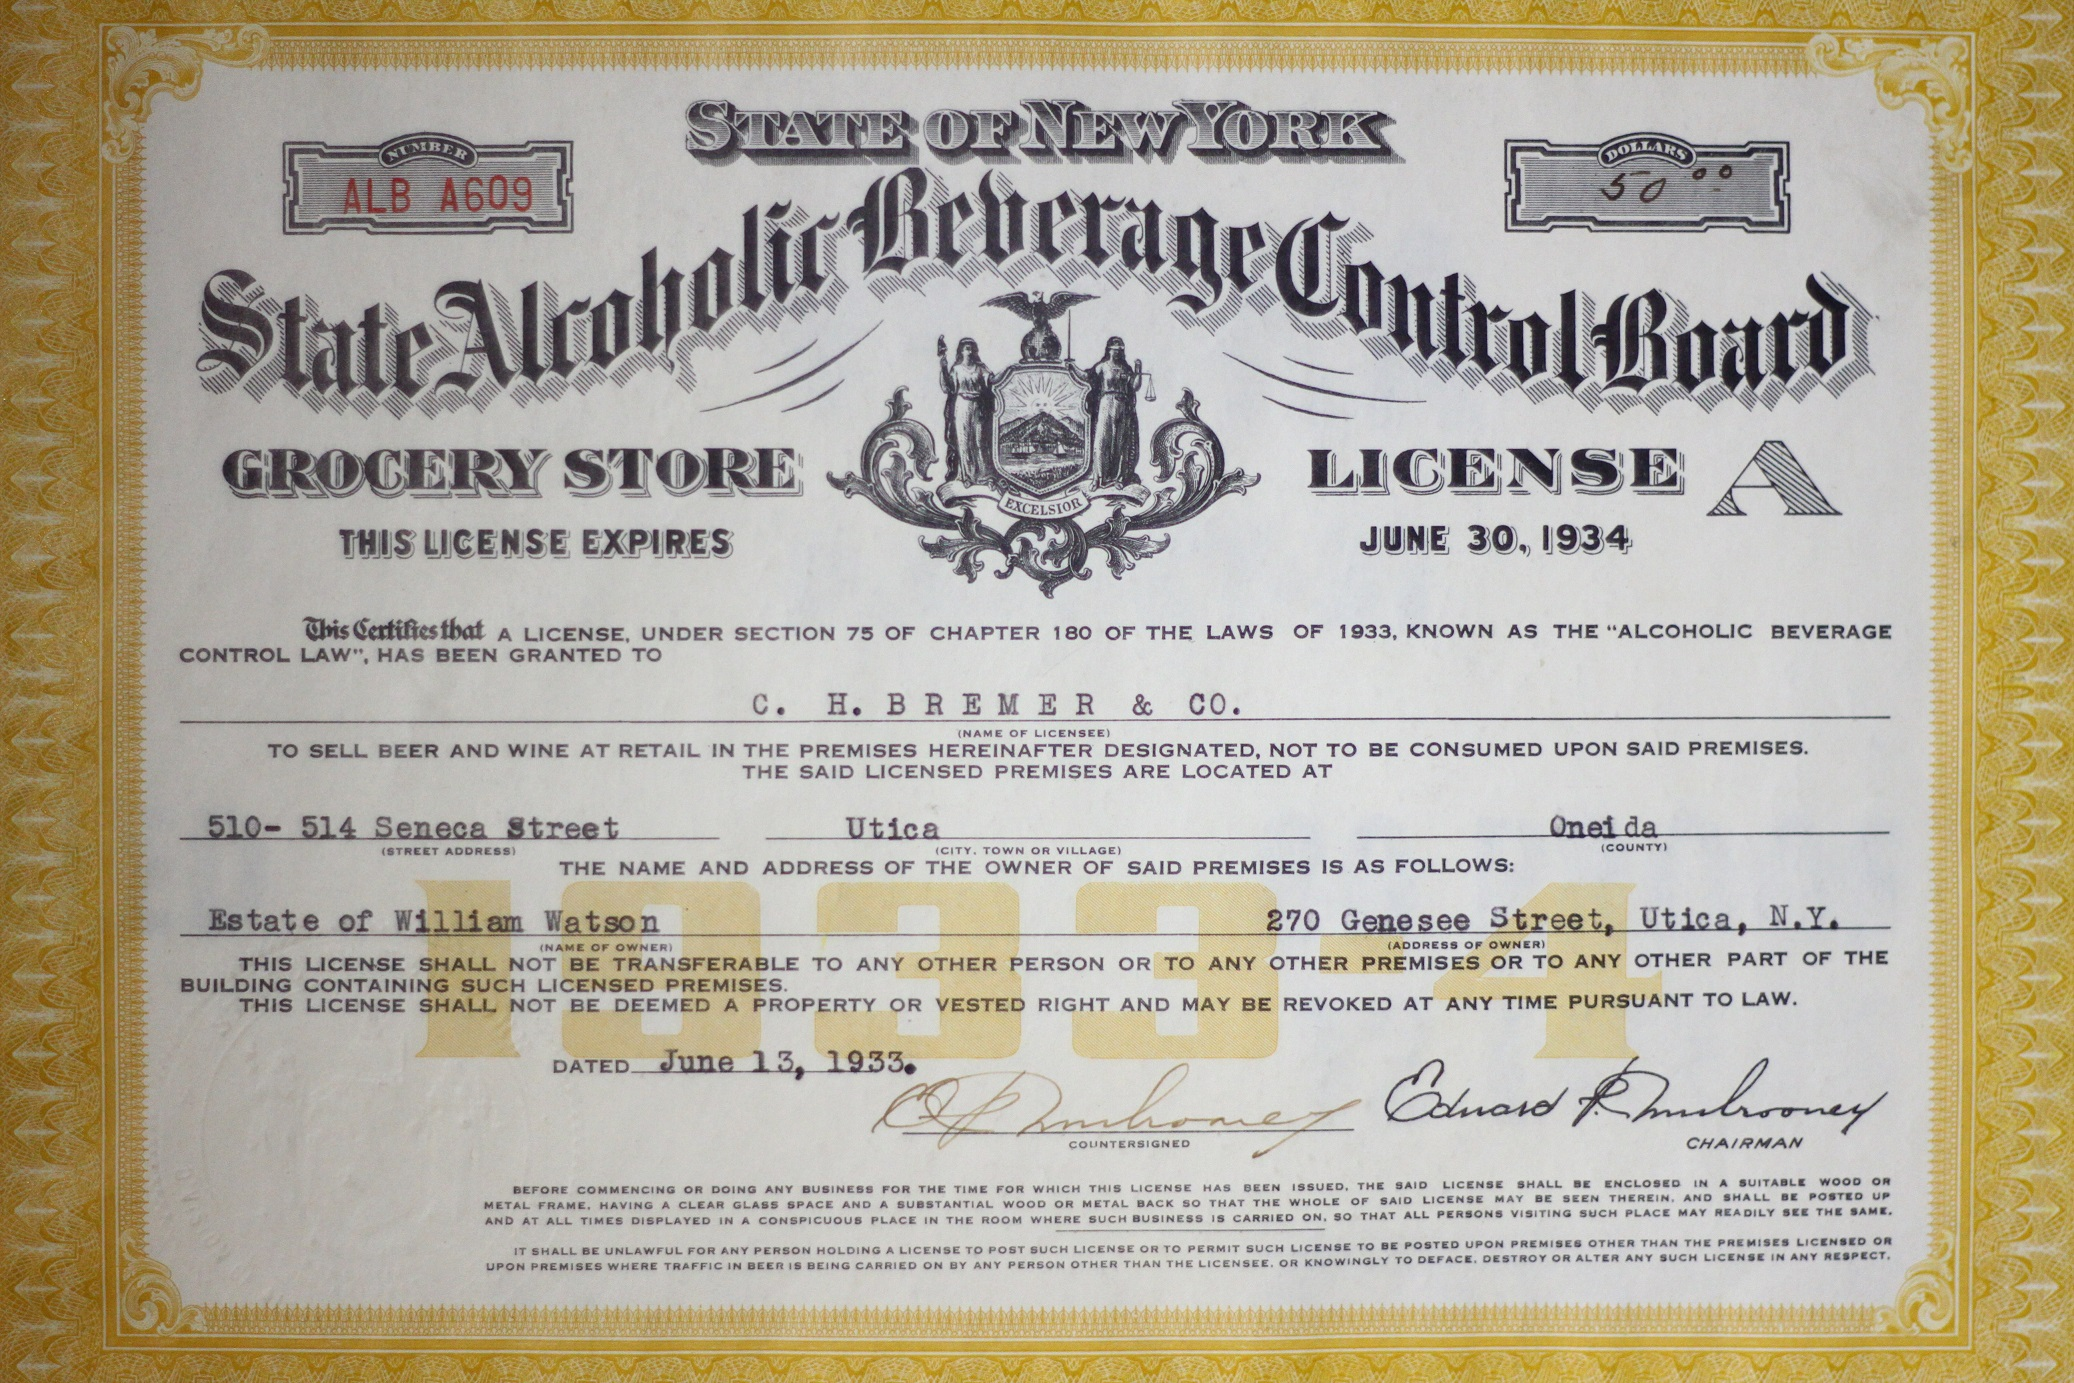 Bremer's Liquor License from June 1934- the first issued in Oneida County following Prohibition